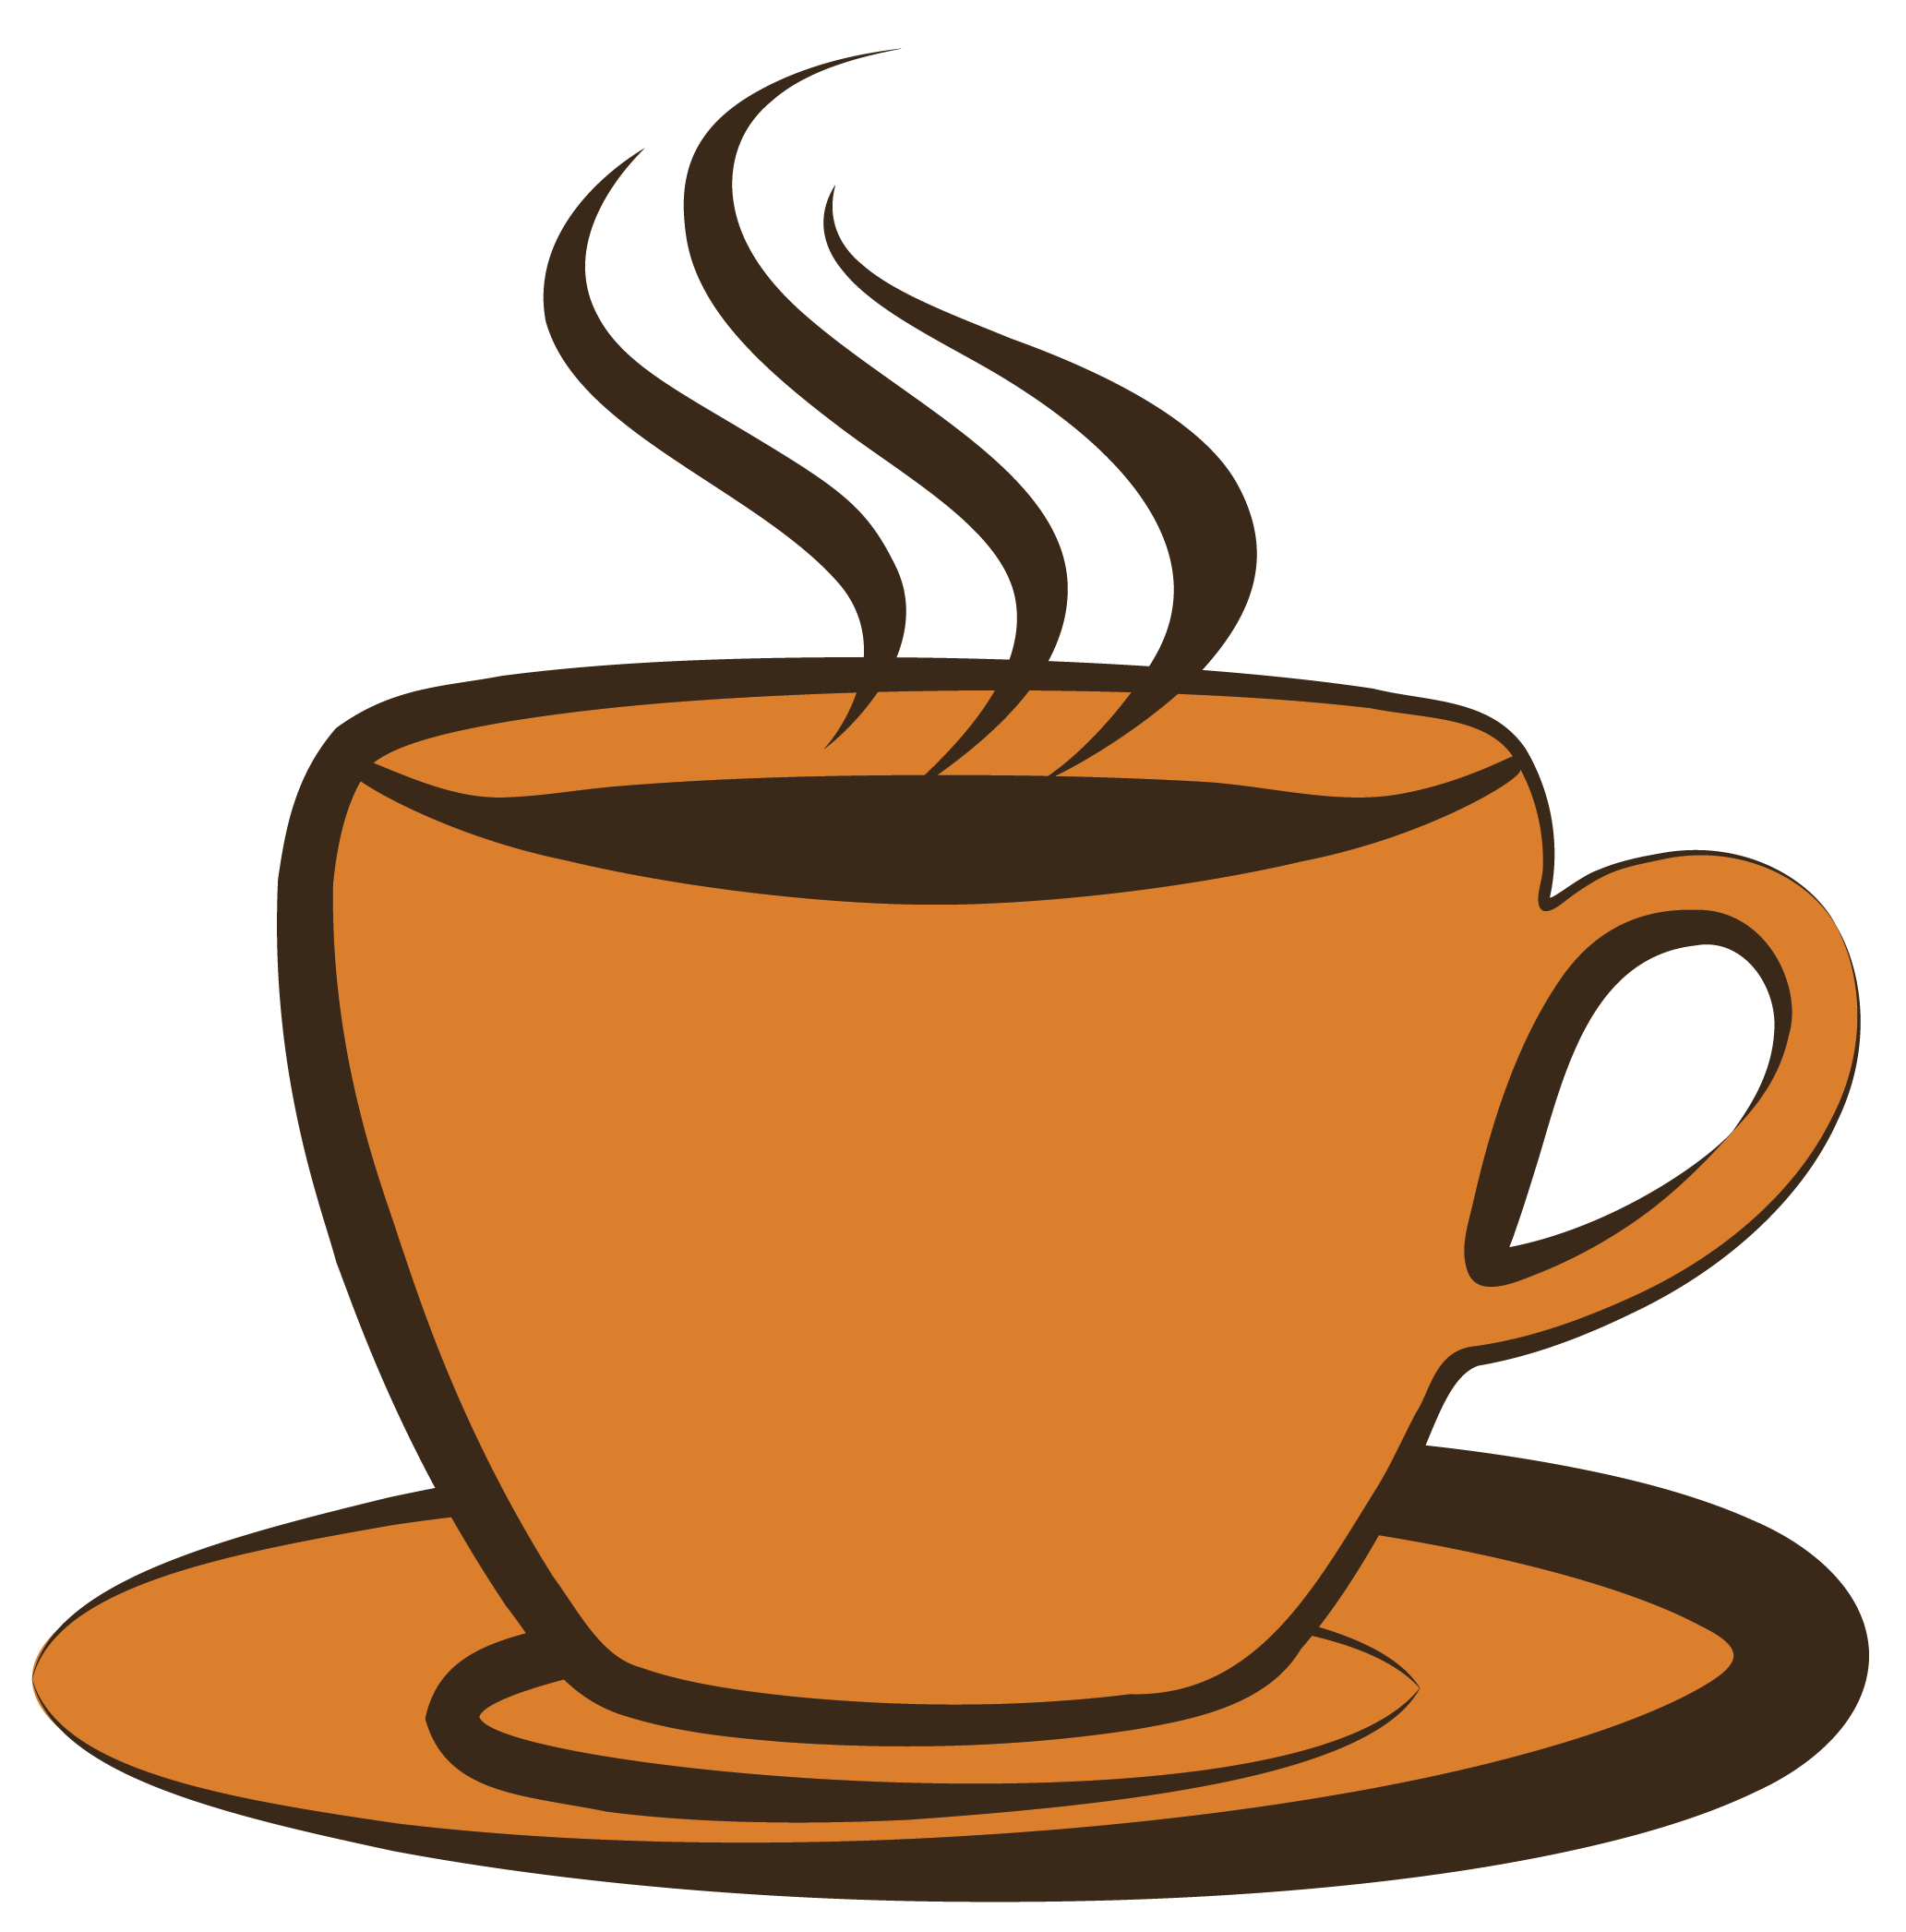 2065x2093 Coffee cup clip art free perfect of coffee clipart 3 2